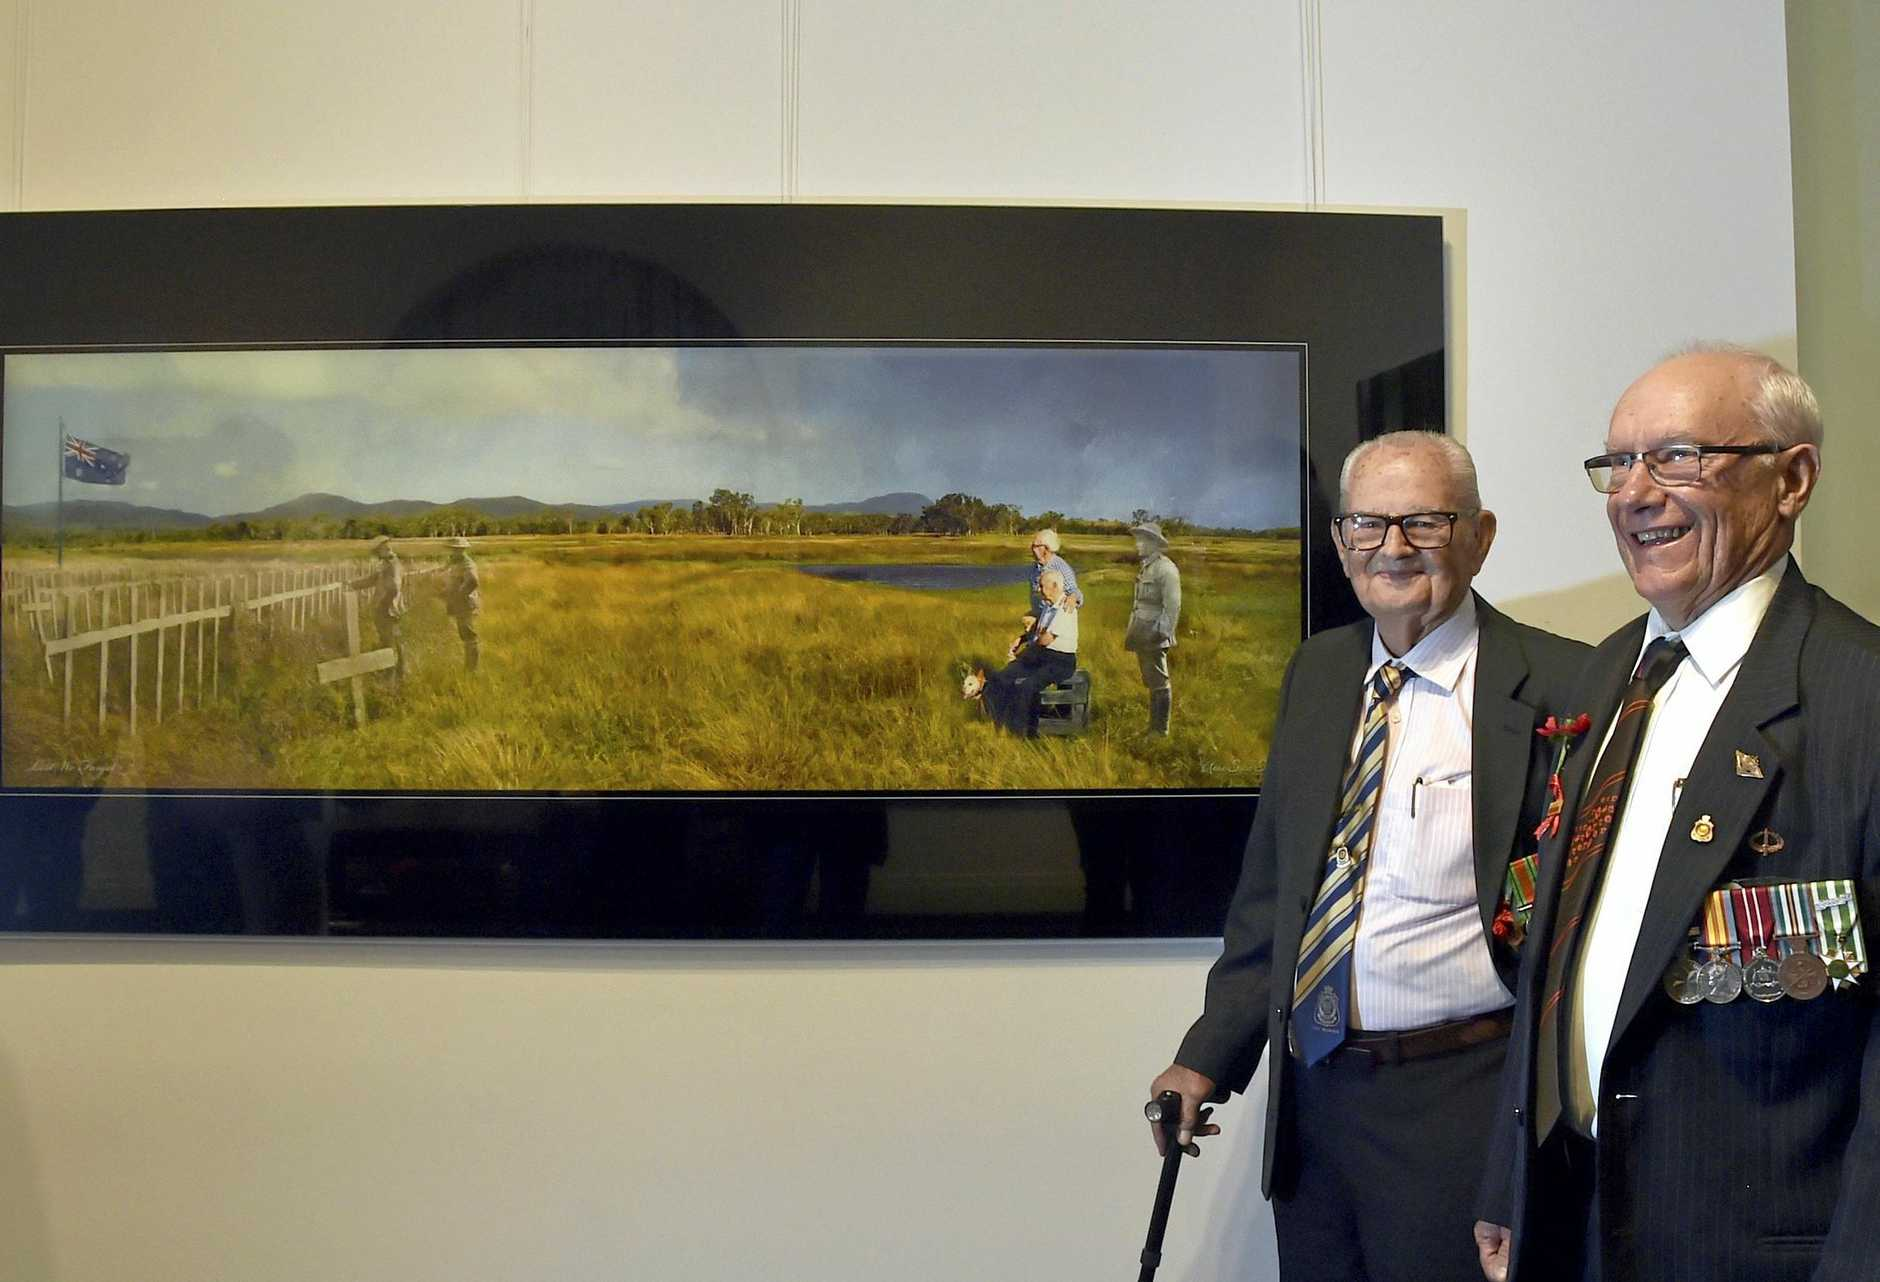 Ian Lade (left) and George Gnezdillff. WW2 veterans see the photomontage they are featured in at the Toowoomba Regional Art Gallery exhibition opening. August 2018